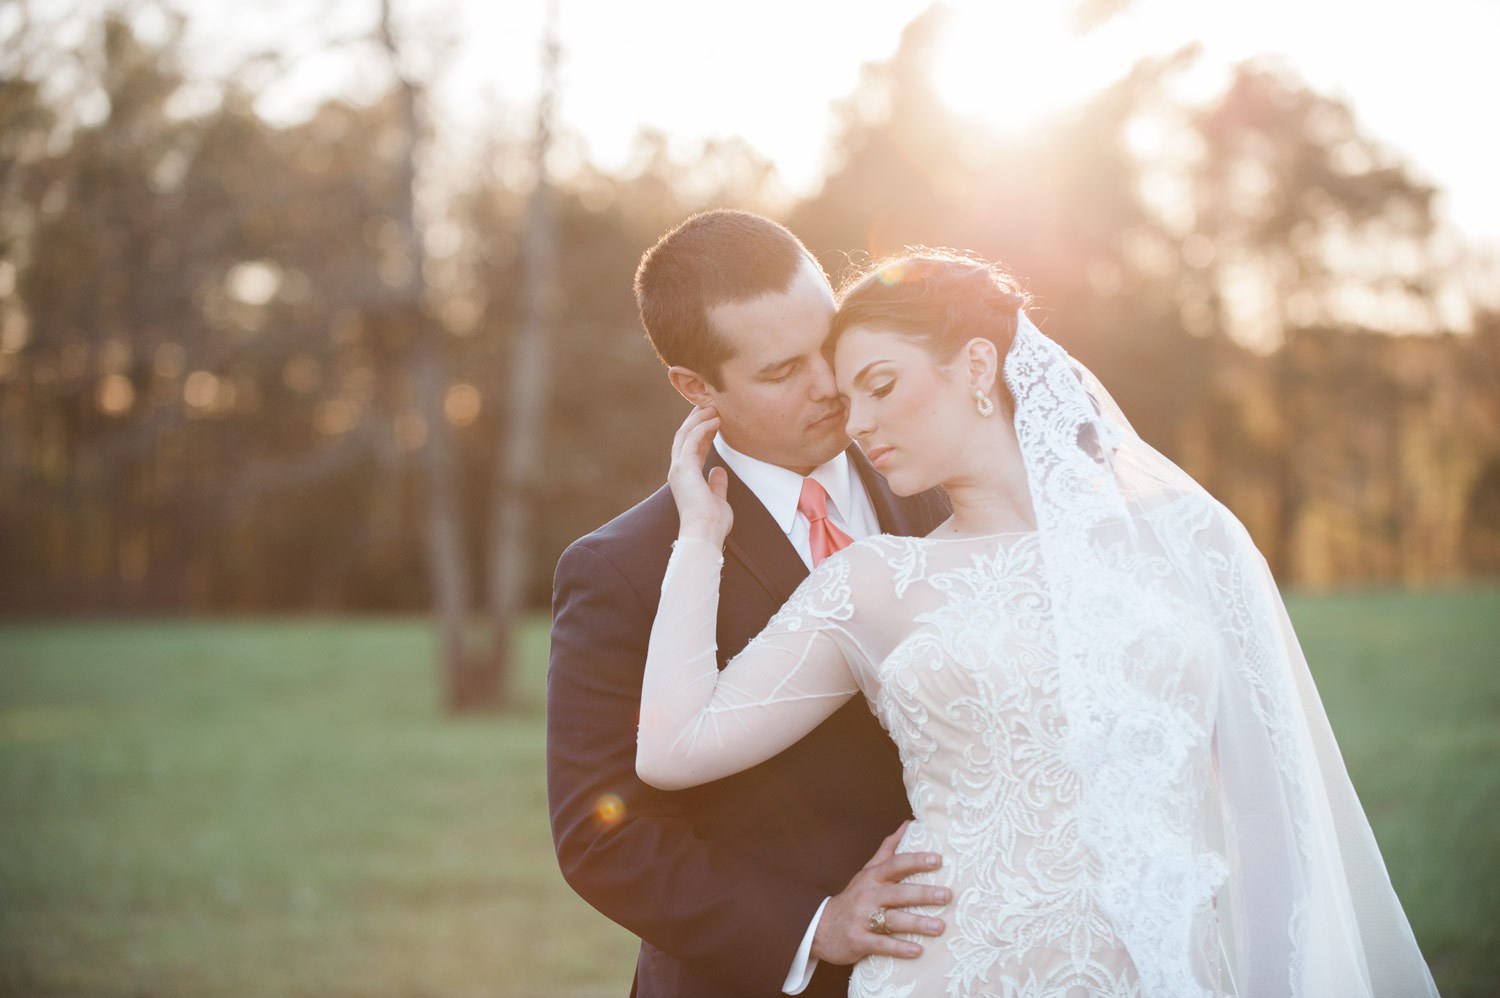 4 Tips For Choosing A Wedding Photographer